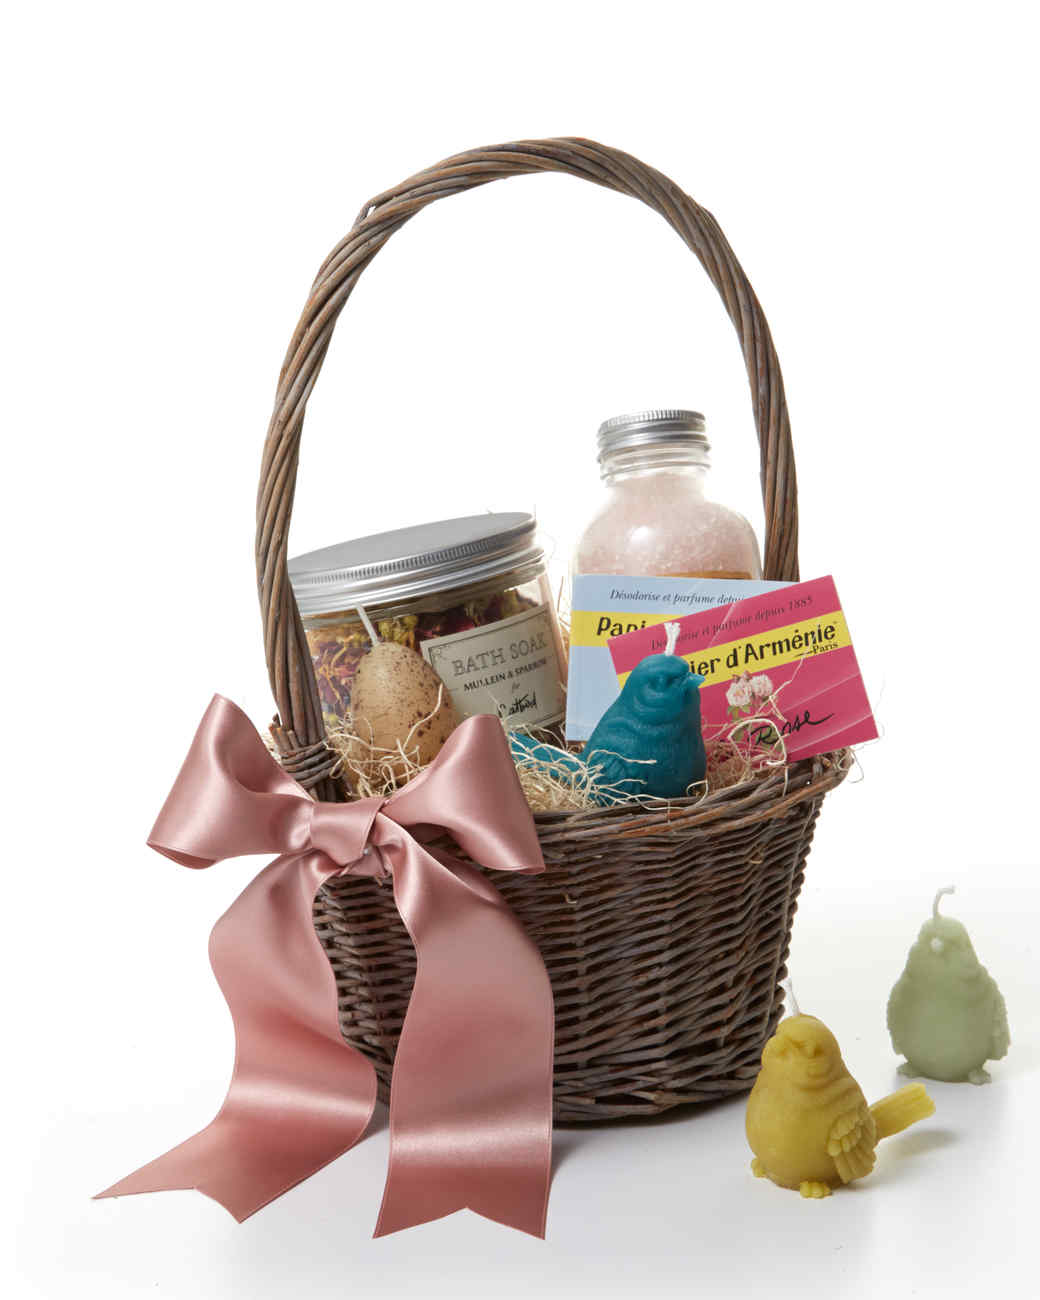 9 adorable easter basket ideas for toddlers martha stewart 8 luxurious easter basket ideas for adults negle Image collections